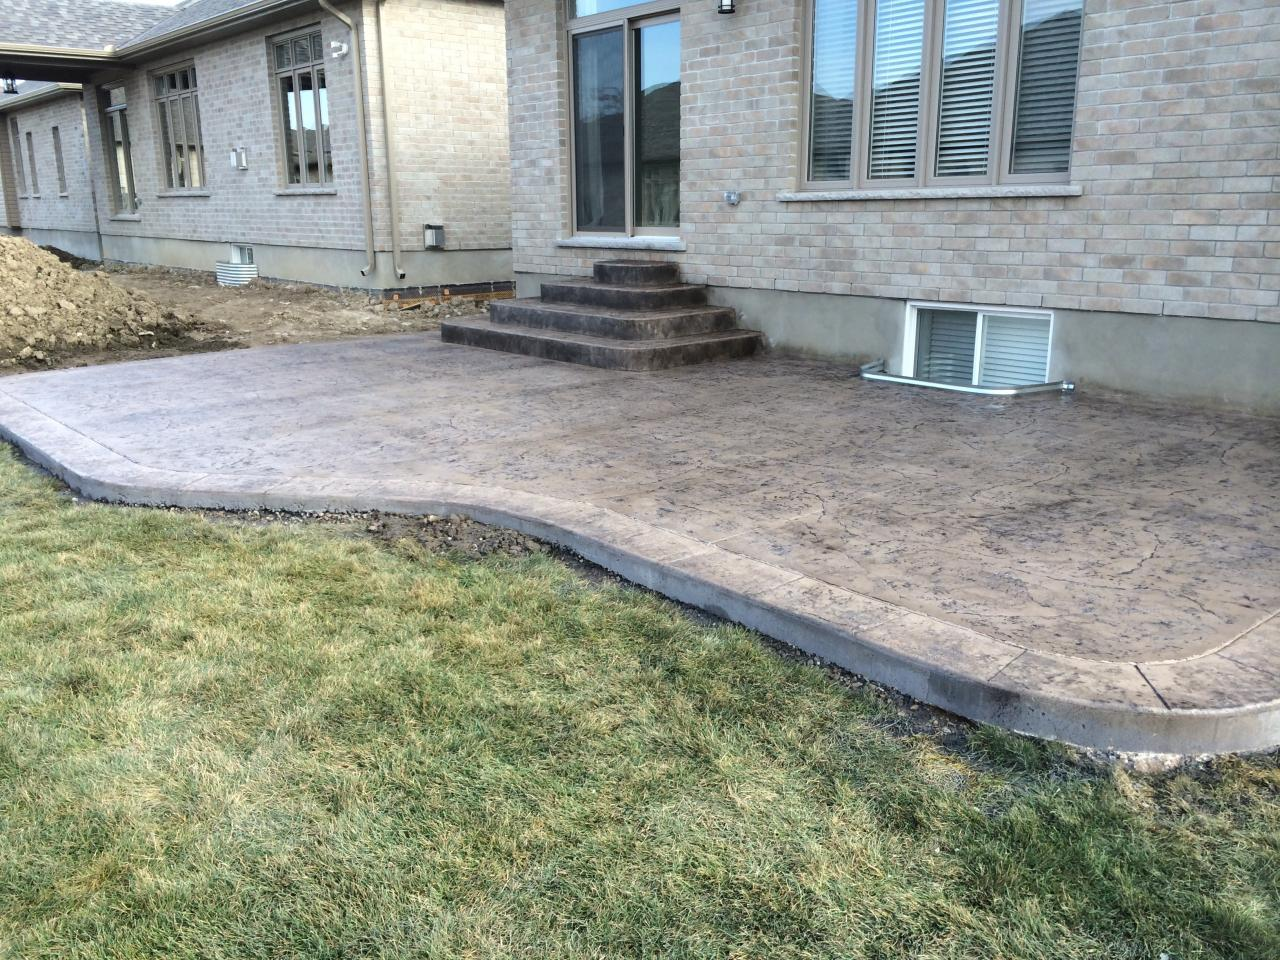 Thames valley decorative concrete inc patios for Pool design london ontario